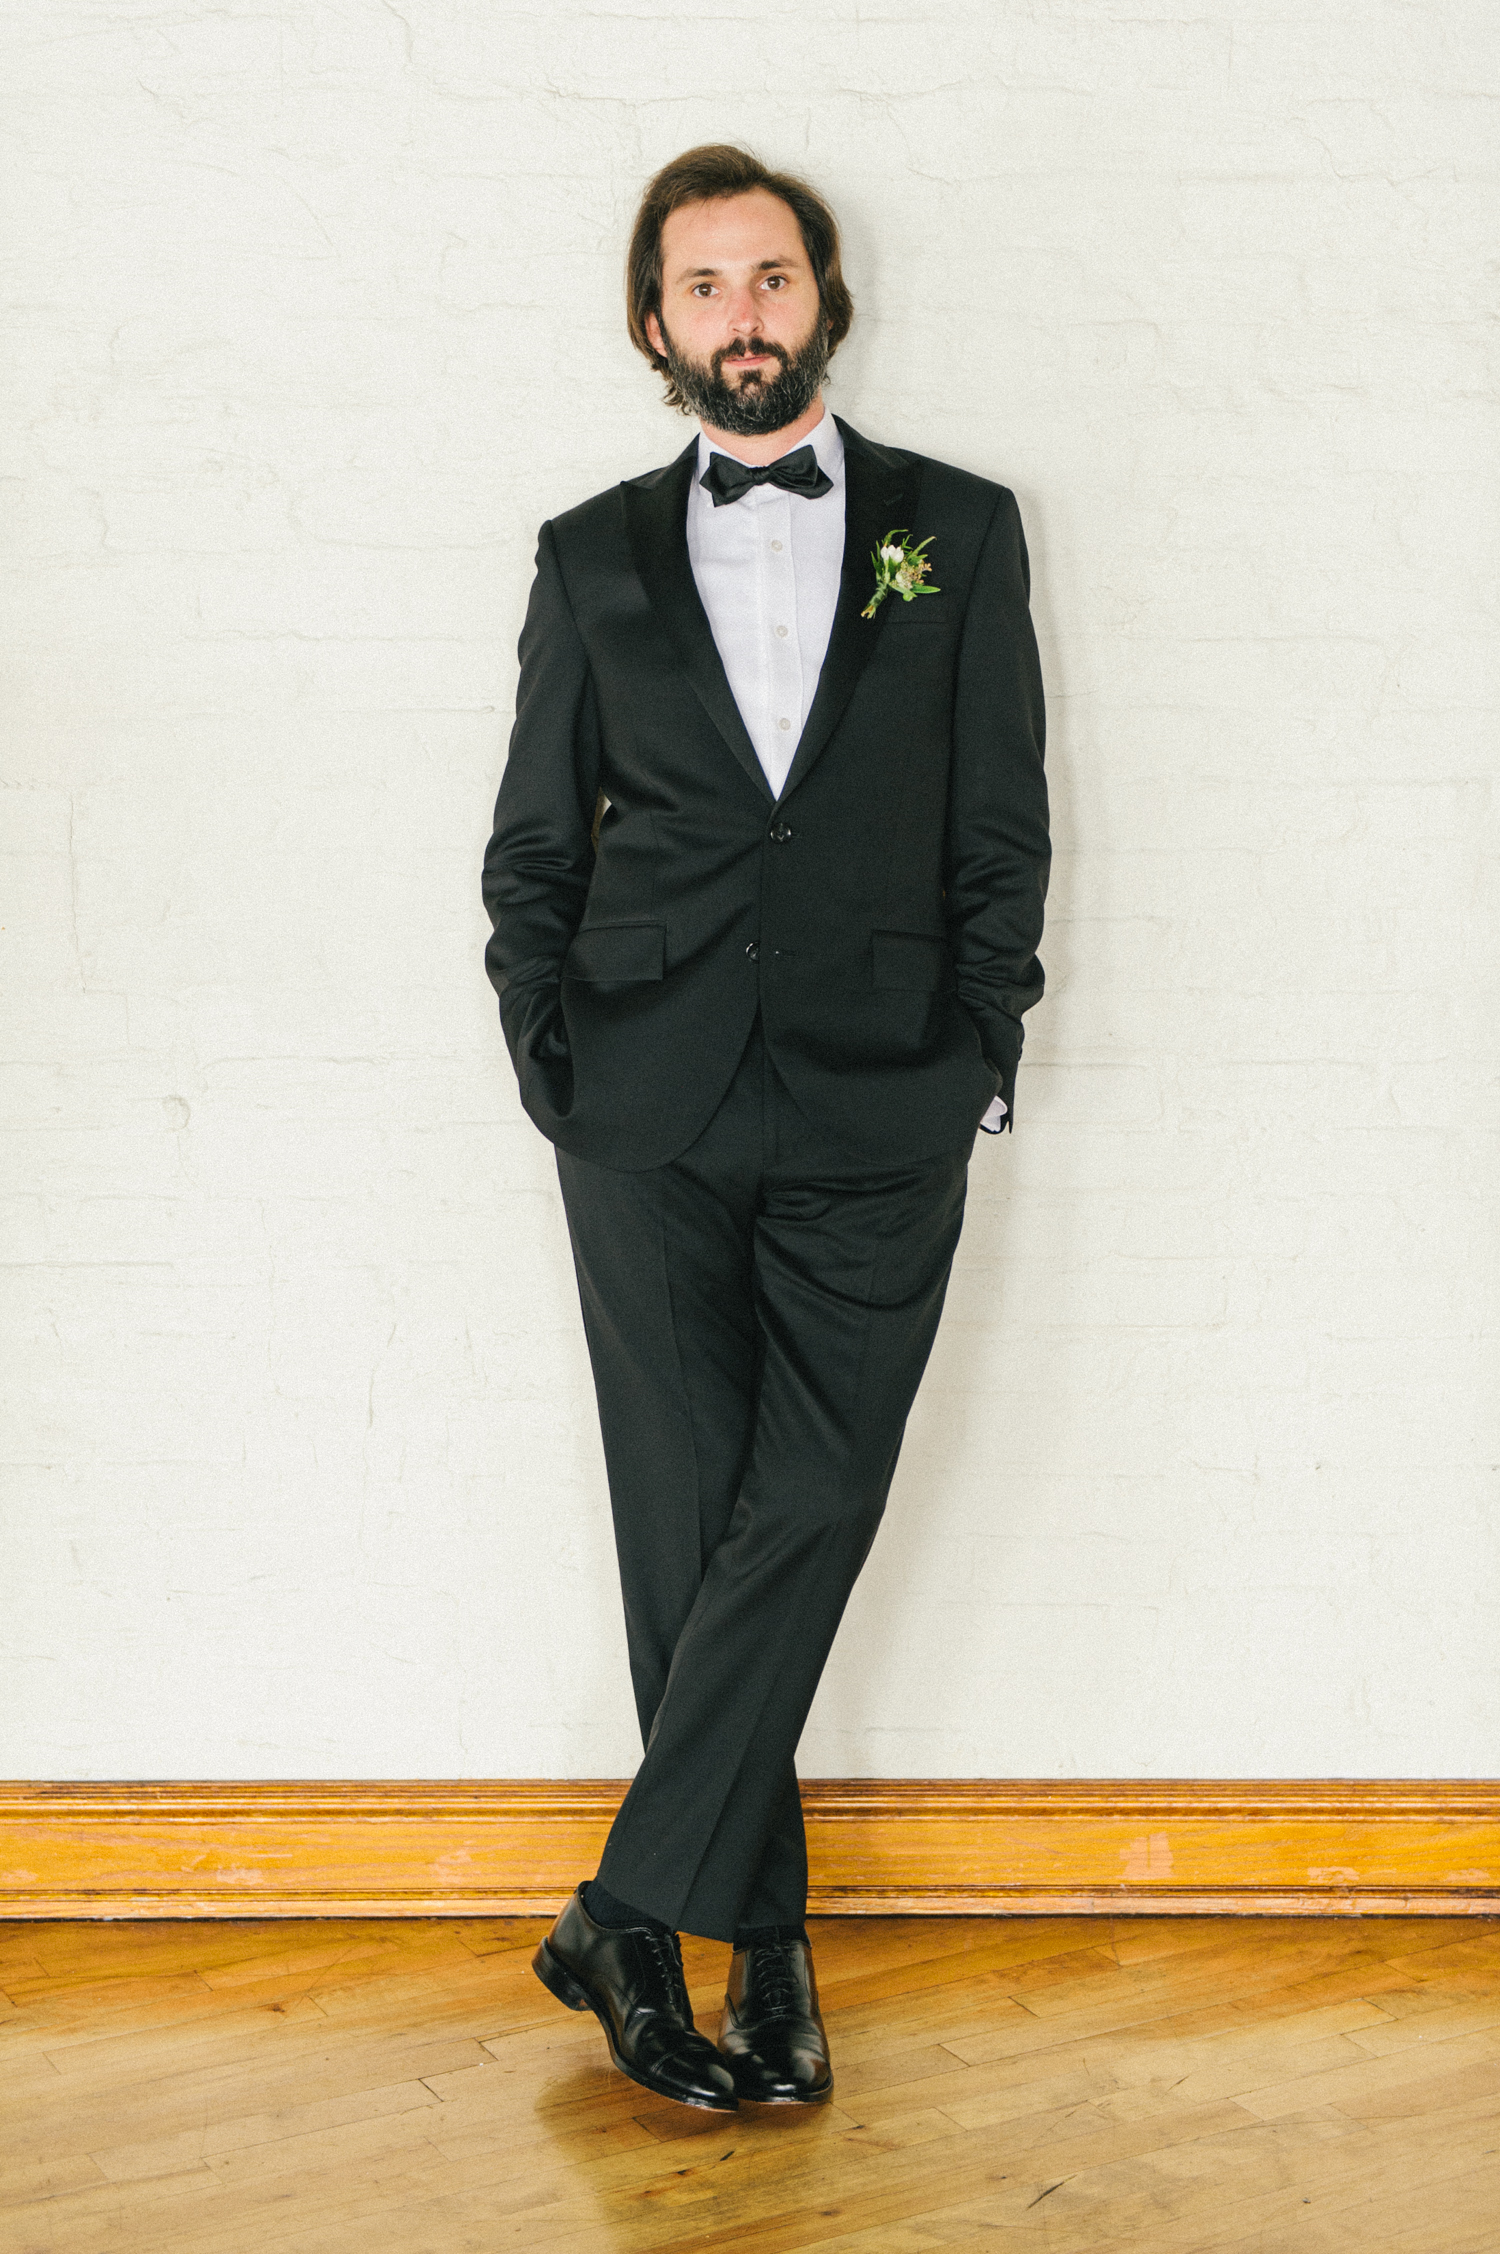 LibertyWarehouse.Brooklyn.RedHook.Wedding13.jpg